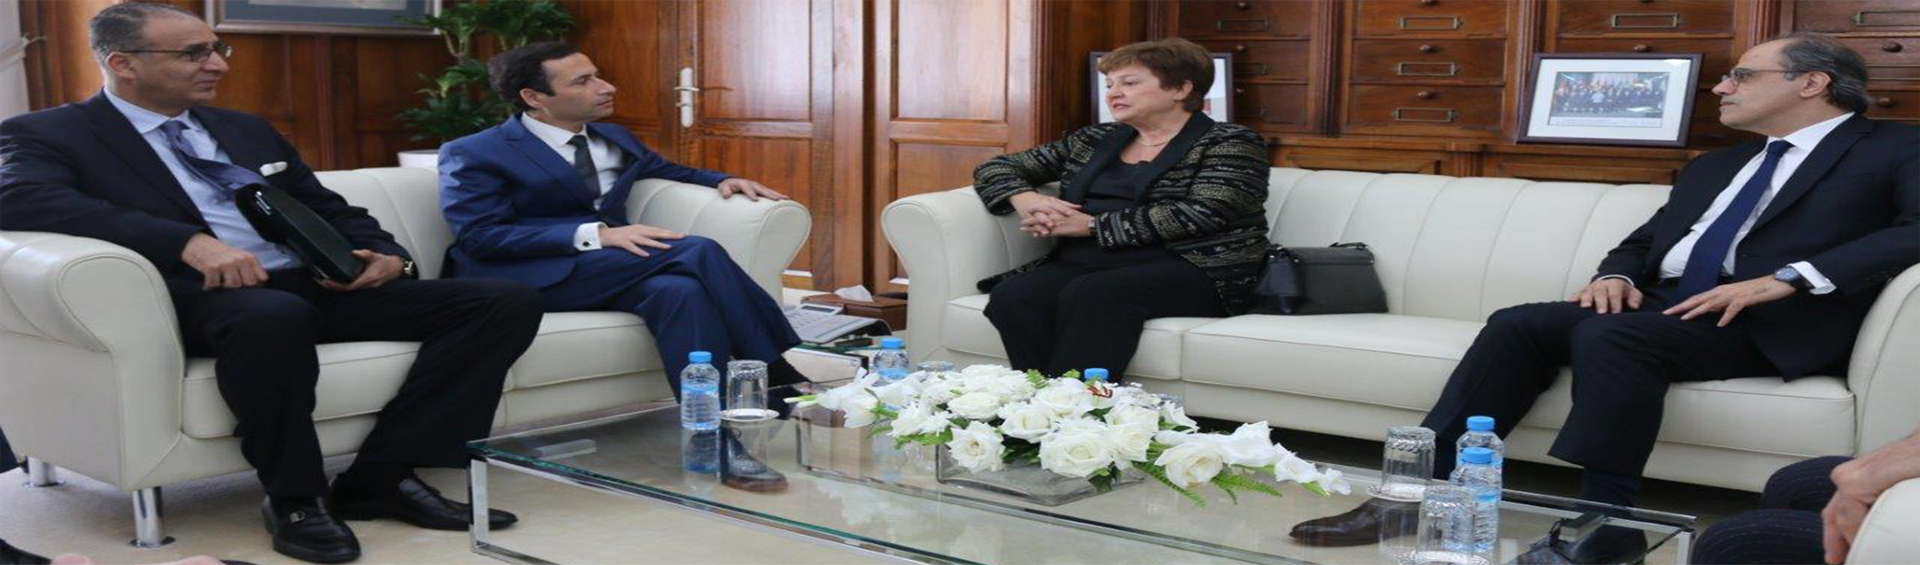 Meeting of the Managing Director of the IMF with the Minister